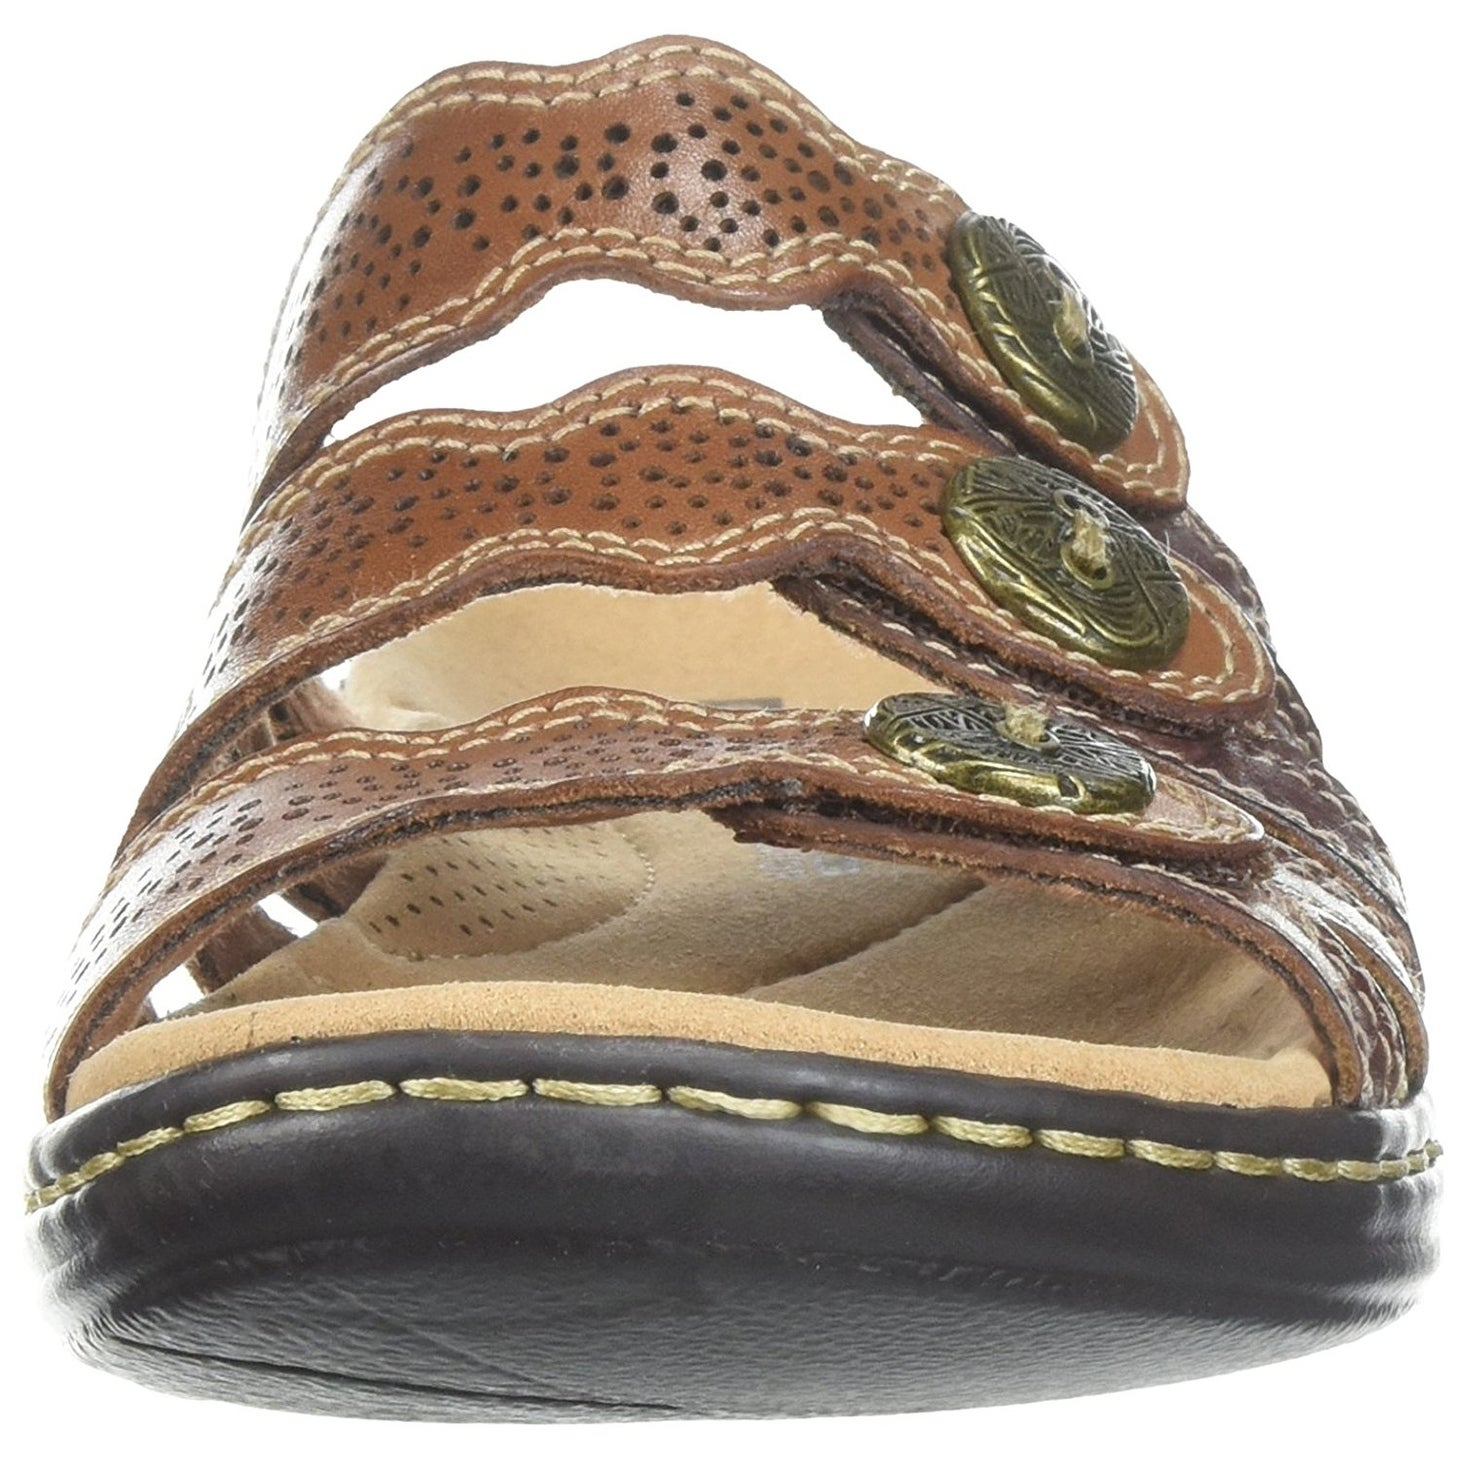 4e8813591e7 Shop CLARKS Womens Leisa Grace Leather Open Toe Casual Slide Sandals - Free  Shipping On Orders Over  45 - Overstock - 20722182